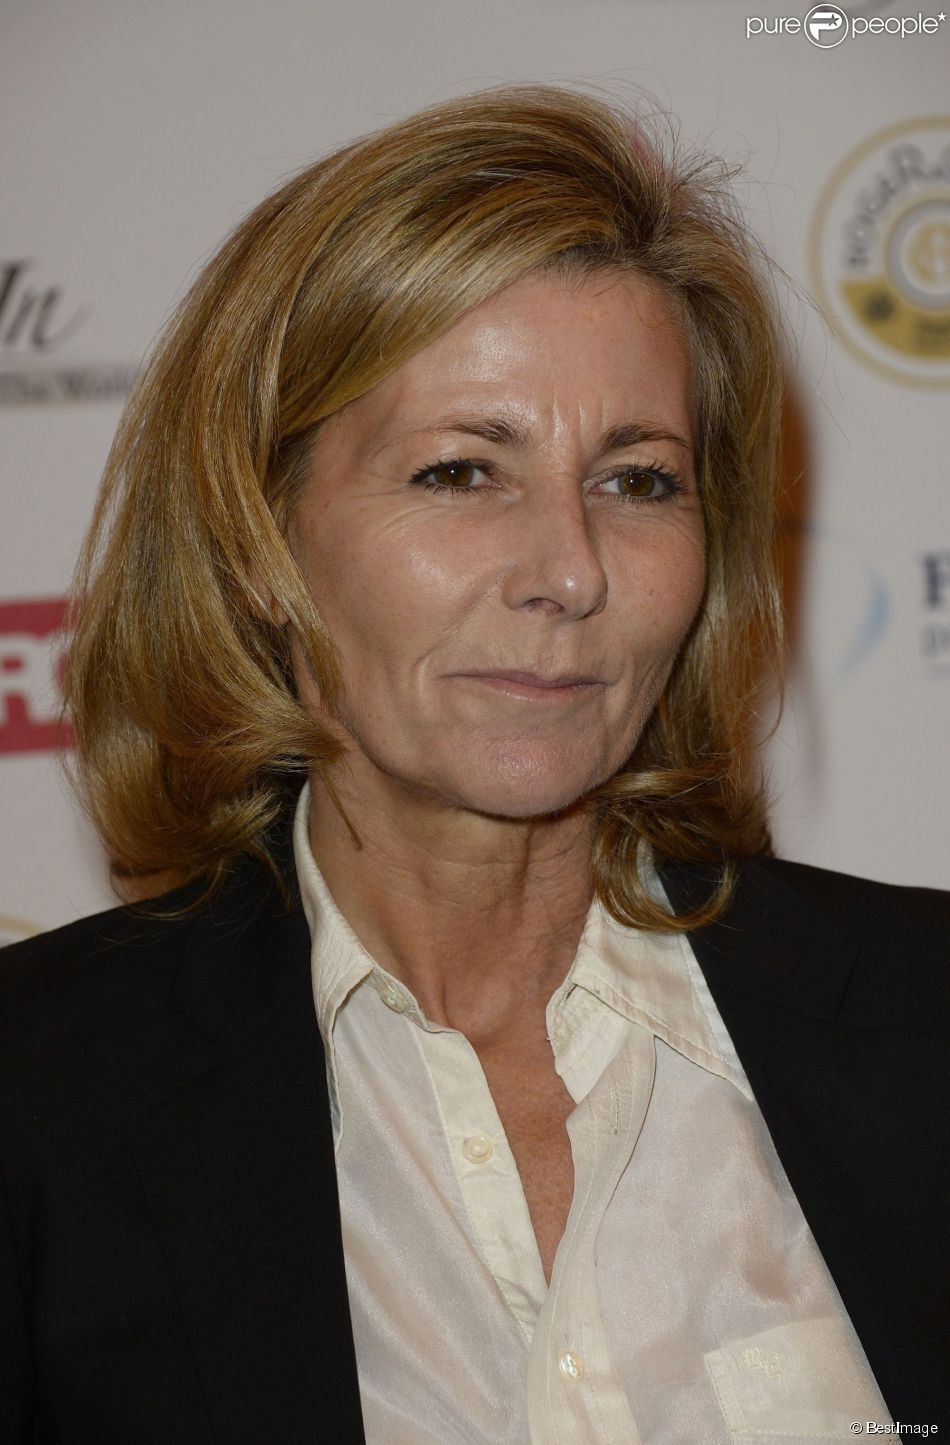 claire chazal 39 39 mon fils fran ois a beaucoup plus d 39 aptitudes que moi 39 39 purepeople. Black Bedroom Furniture Sets. Home Design Ideas